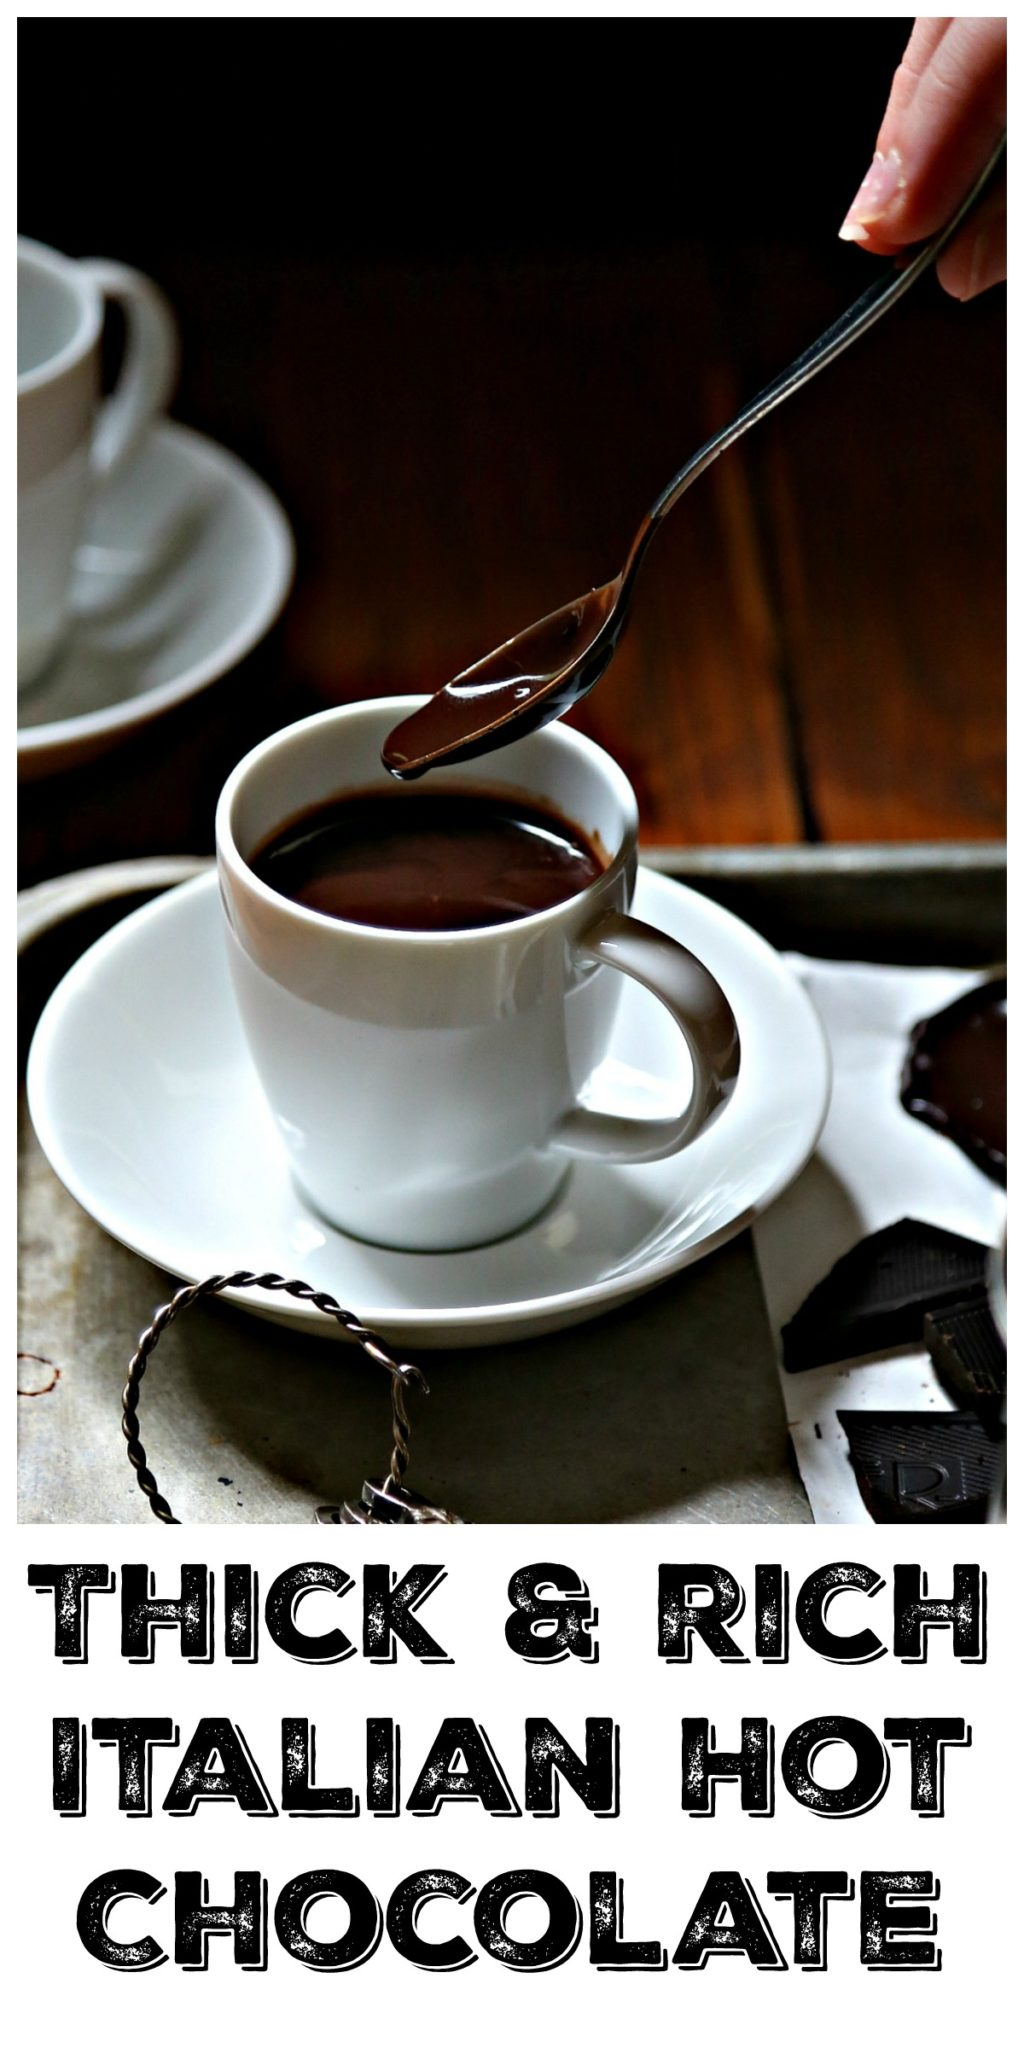 italian hot chocolate on silver tray with spoon Pinterest image via bell'alimento